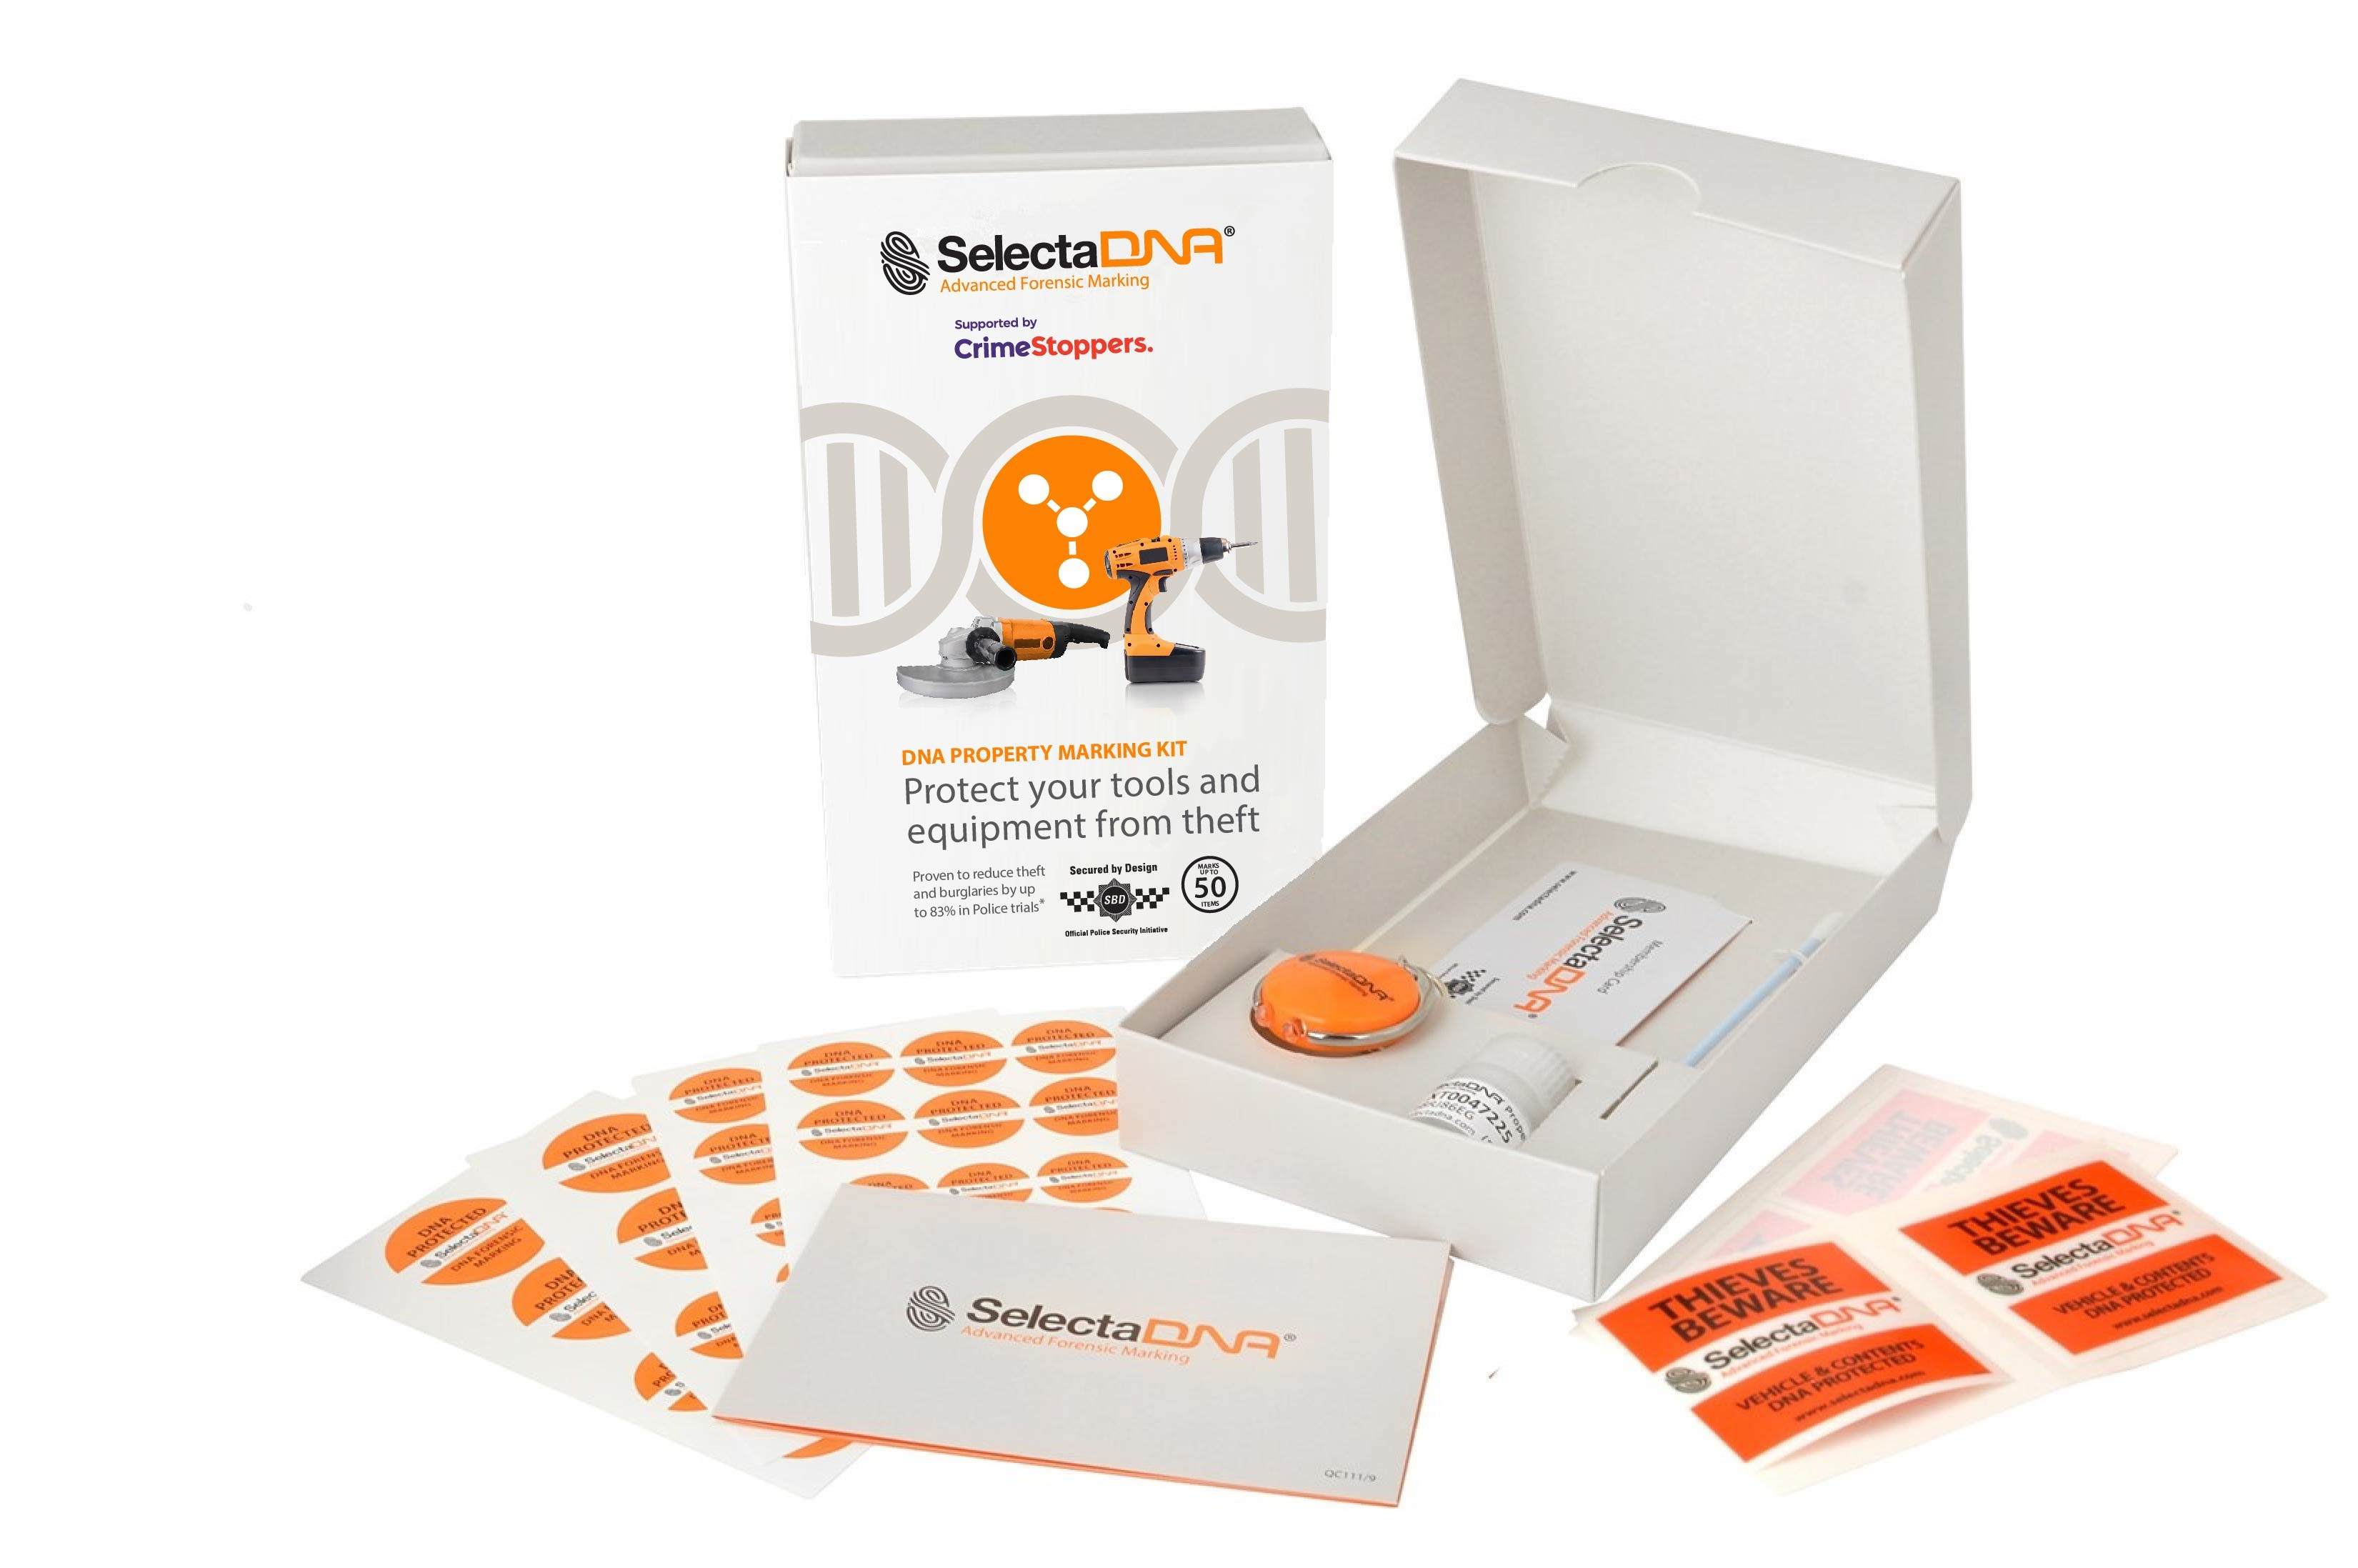 SelectaDNA Tools and Equipment Kit